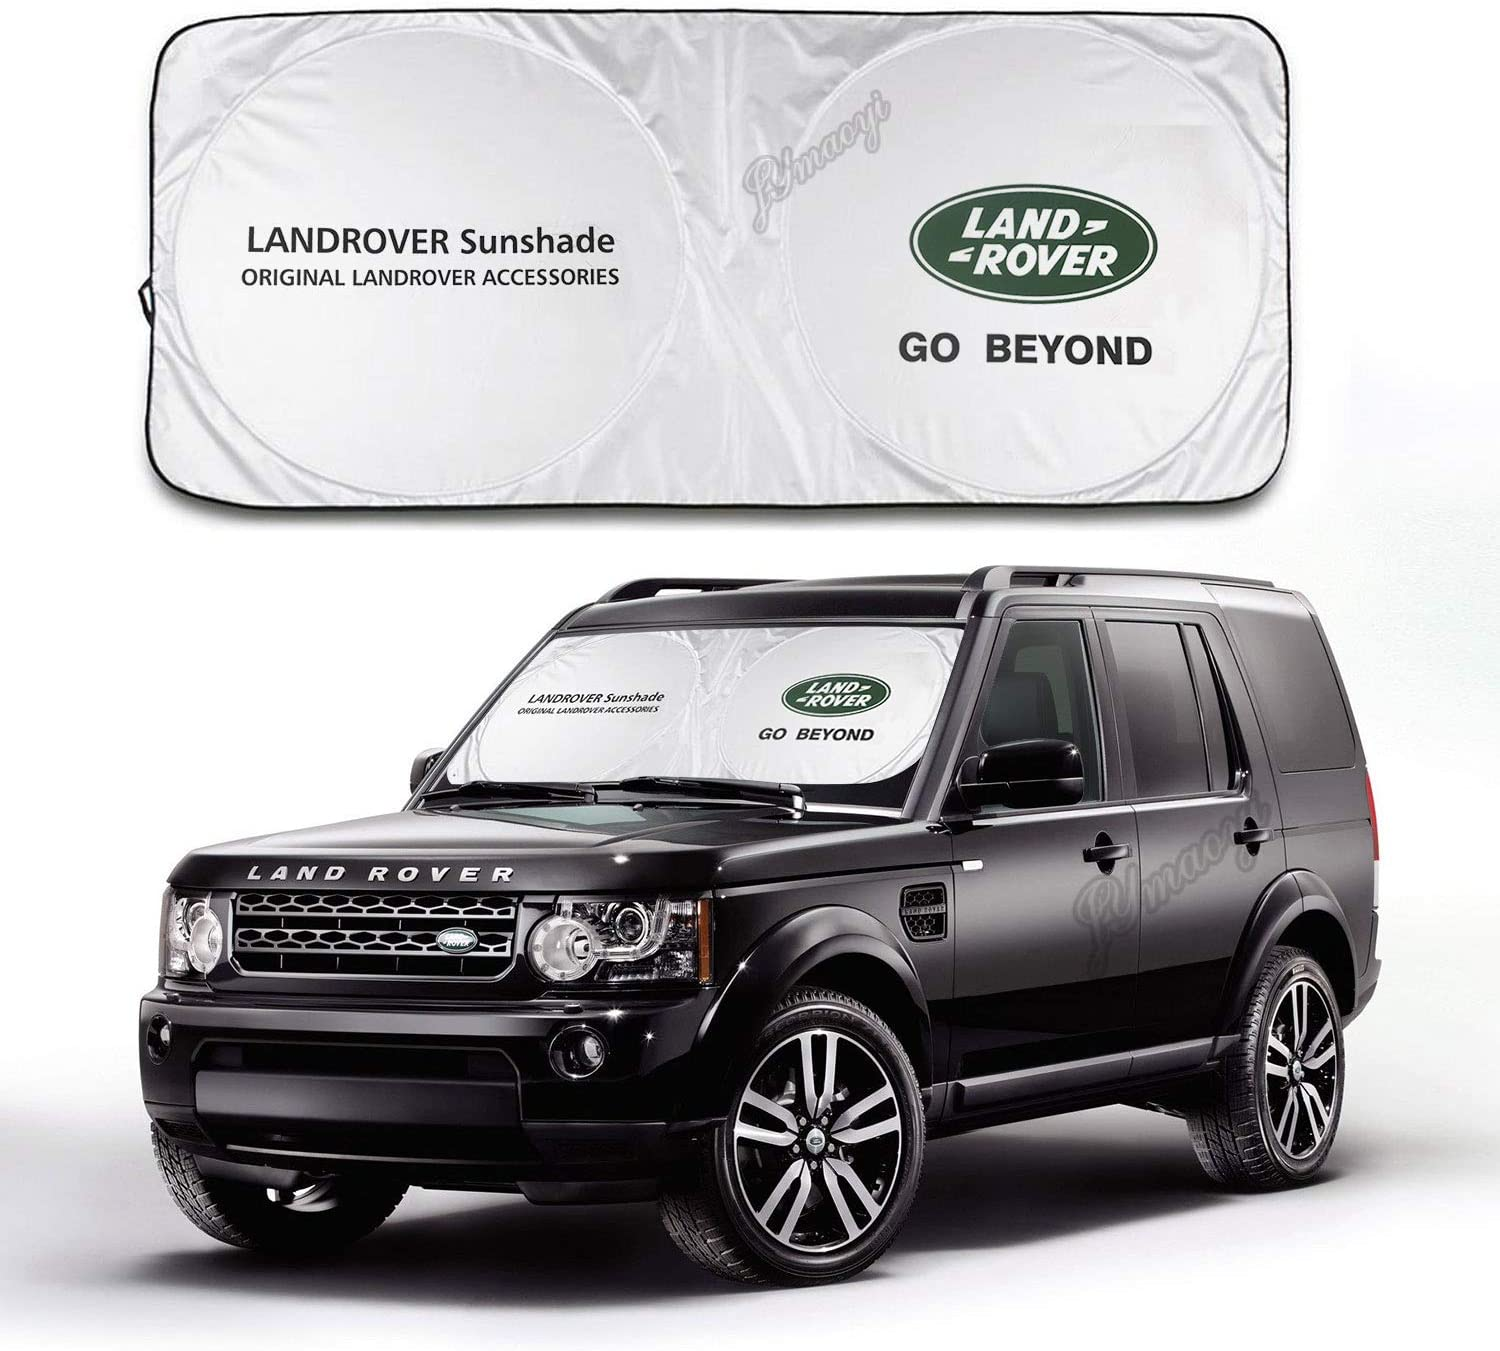 JYMAOYI for Land Rover Sunshade Windshield Visor Cover Car Window Sun Shade UV Protect Car Window Film for Most Land Rover Discovery Sport Evoque Freelander LR2 RangeRover Sport Velar